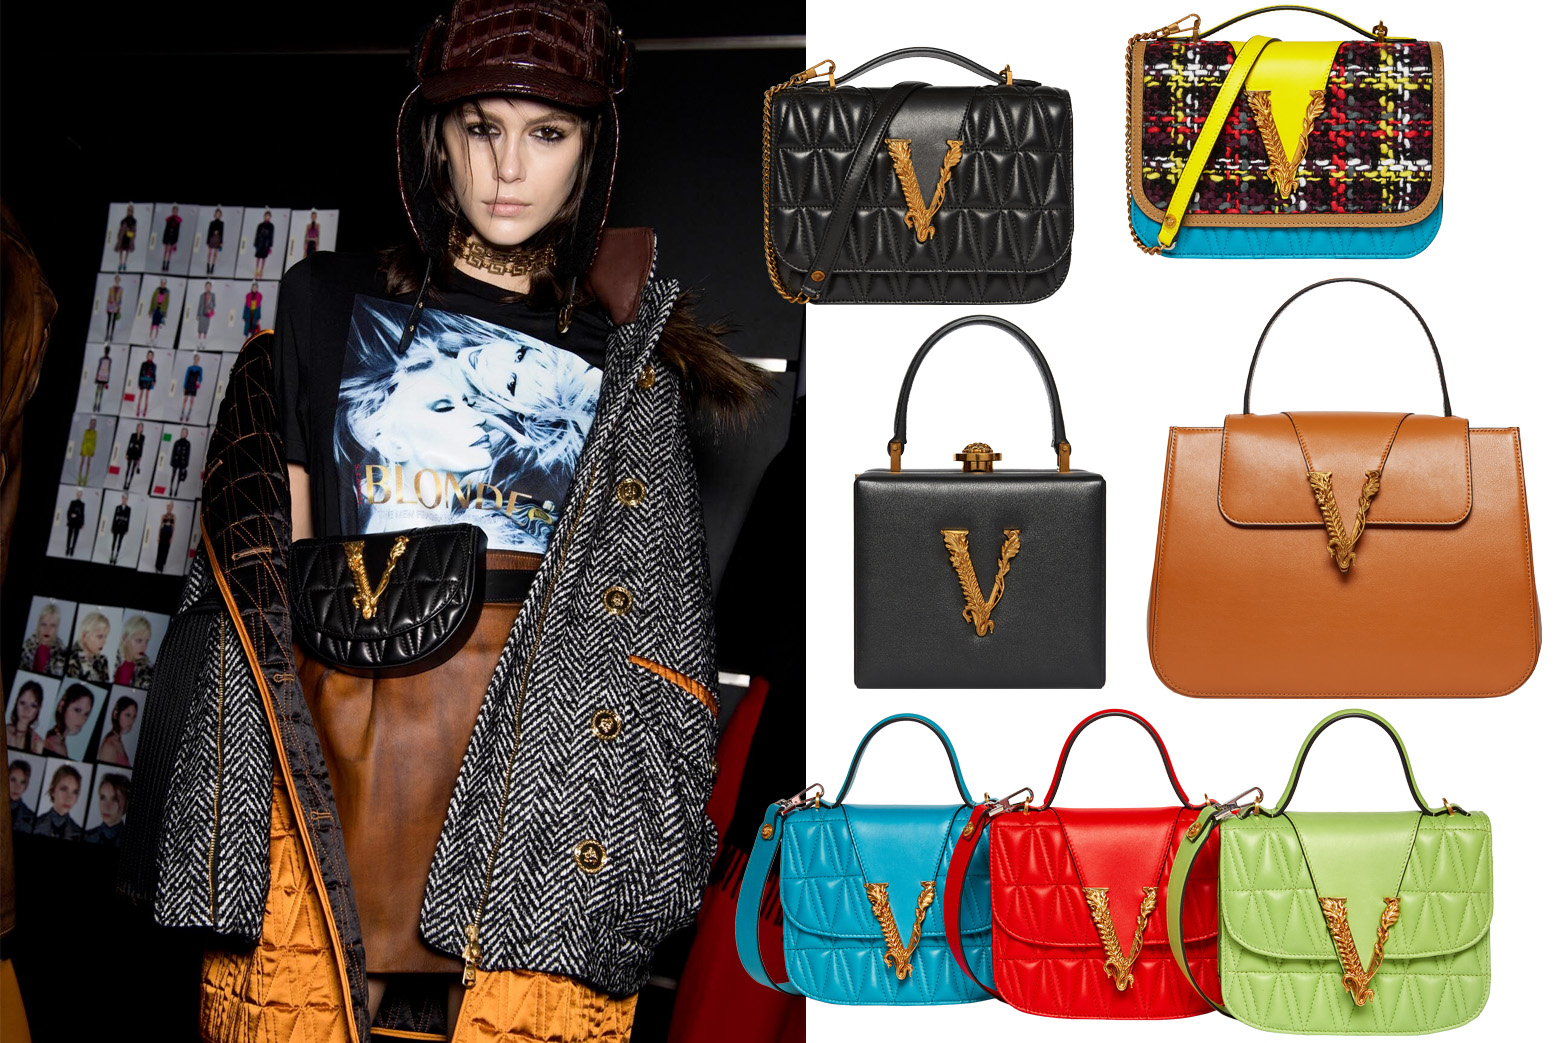 Versace - Virtus bag